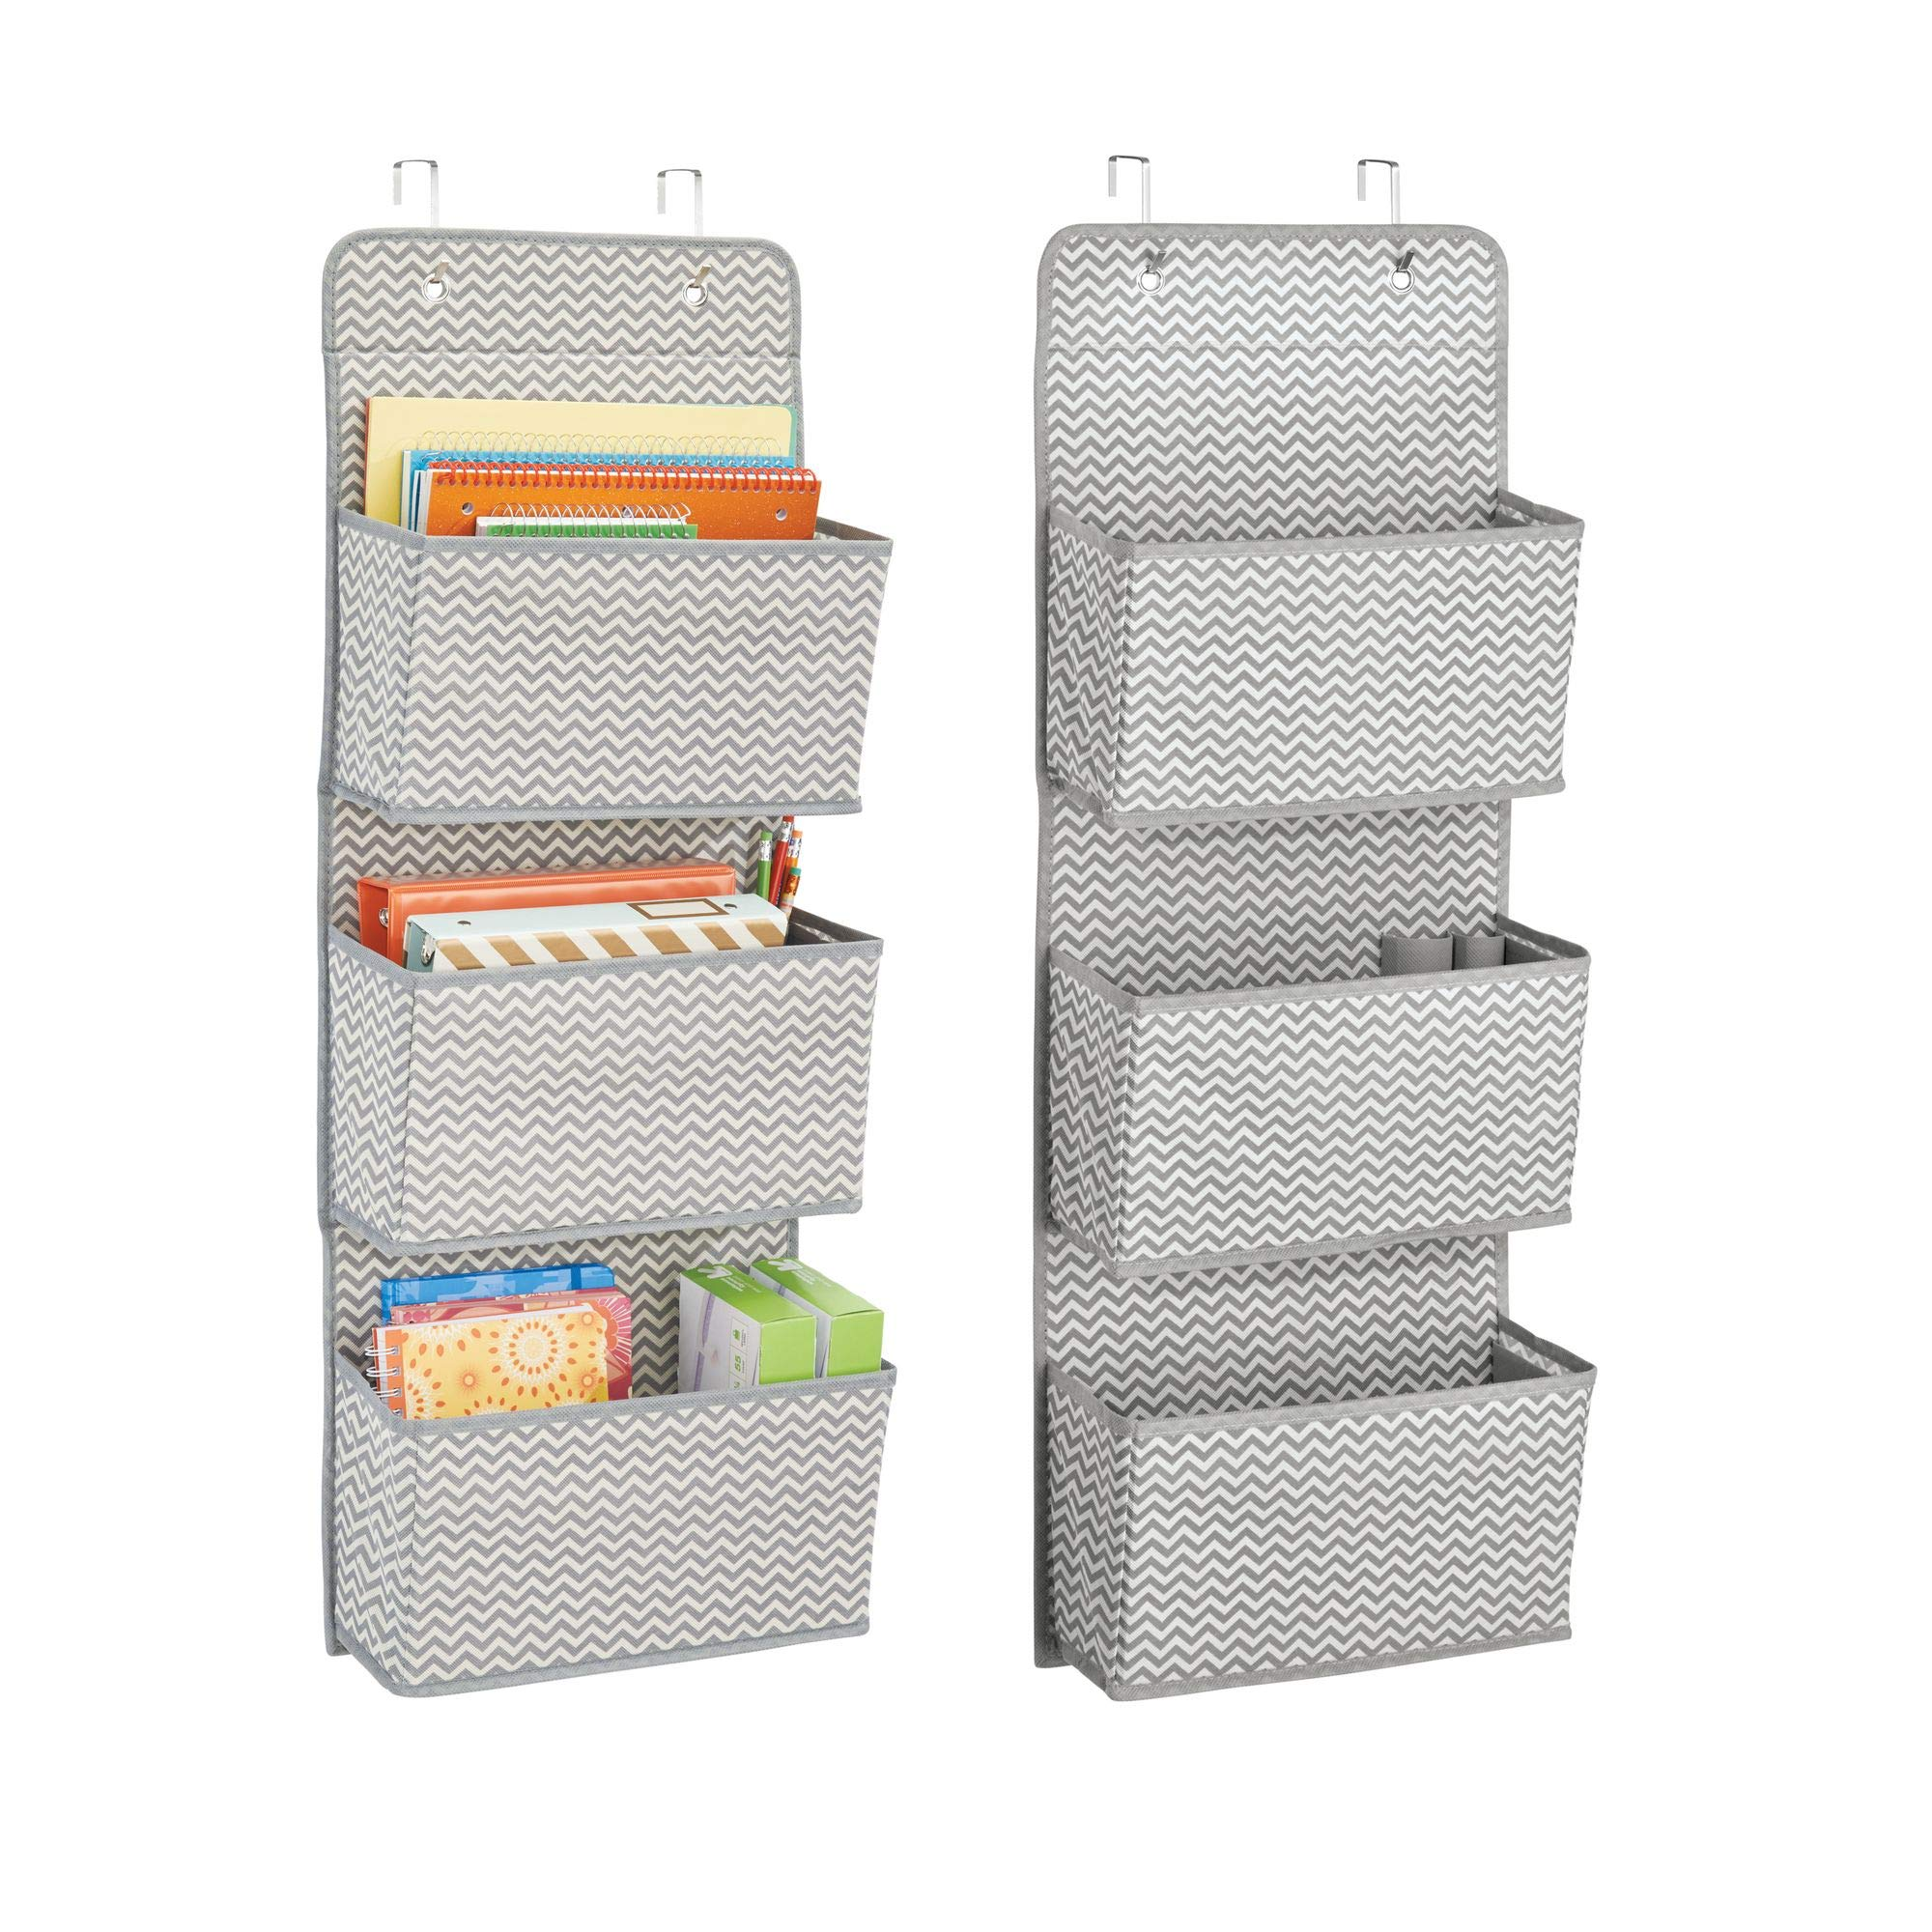 mDesign Soft Fabric Over the Door Hanging Storage Organizer with 3 Large Cascading Pockets, for Office Supplies, Planners, File Folders, Notebooks - Zig Zag Chevron Pattern, Pack of 2, Gray/Cream by mDesign (Image #1)